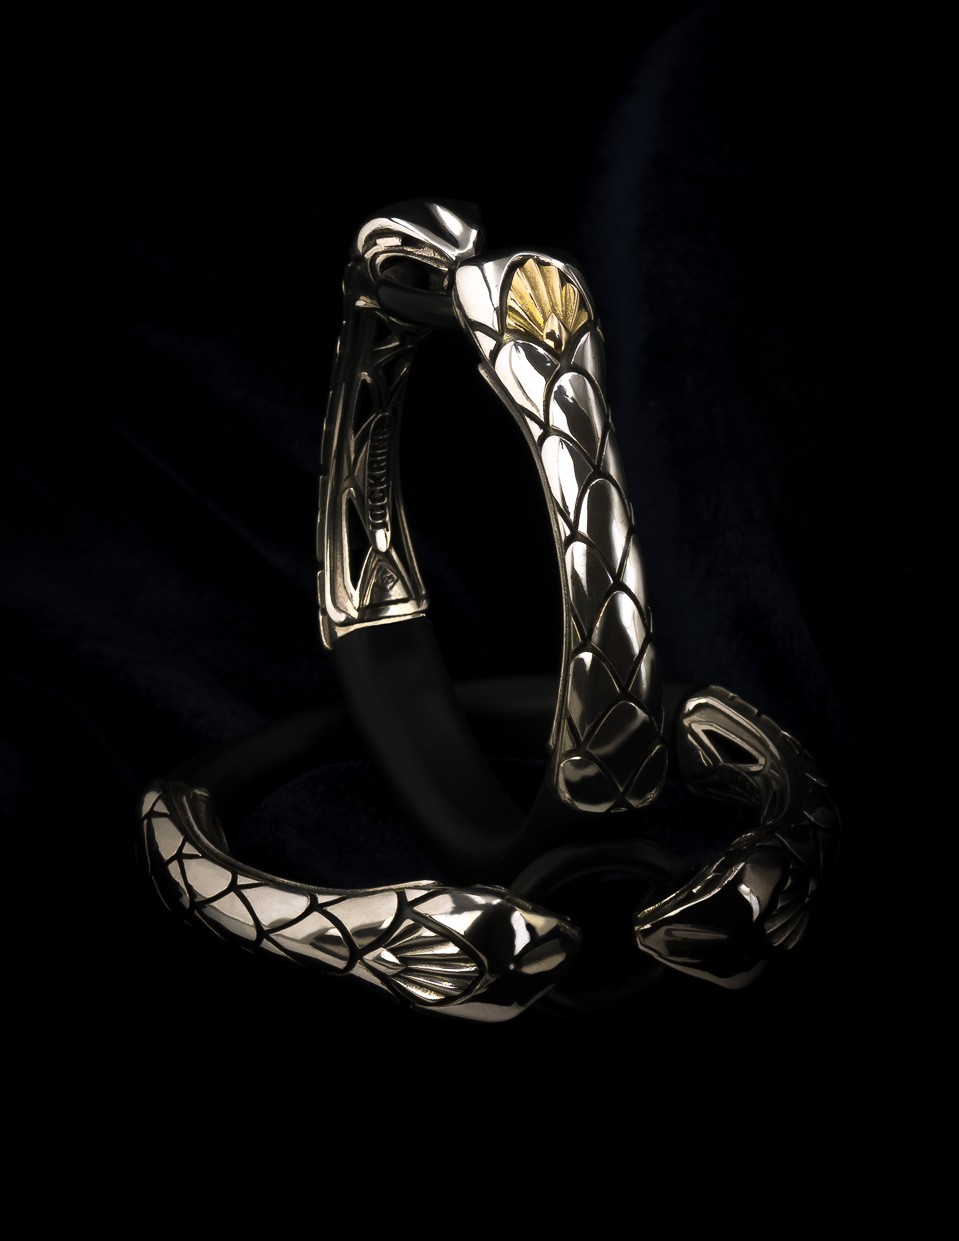 Innovative Snake cock ring. Penis jewelry by esculpta